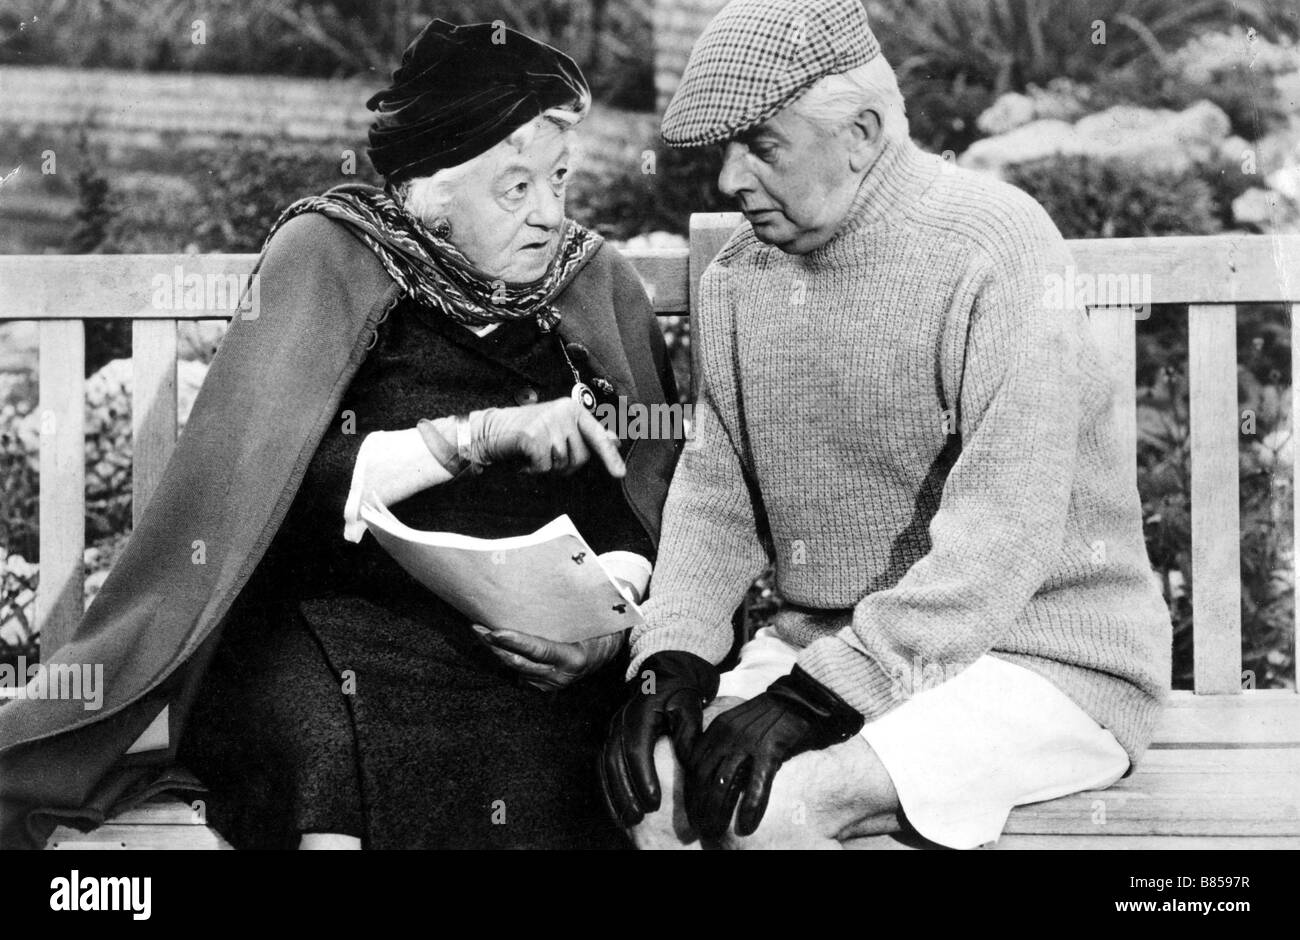 Murder Most Foul  Year: 1964  Director: George Pollock Margaret Rutherford  Adaption of a novel of Agatha Christie - Stock Image